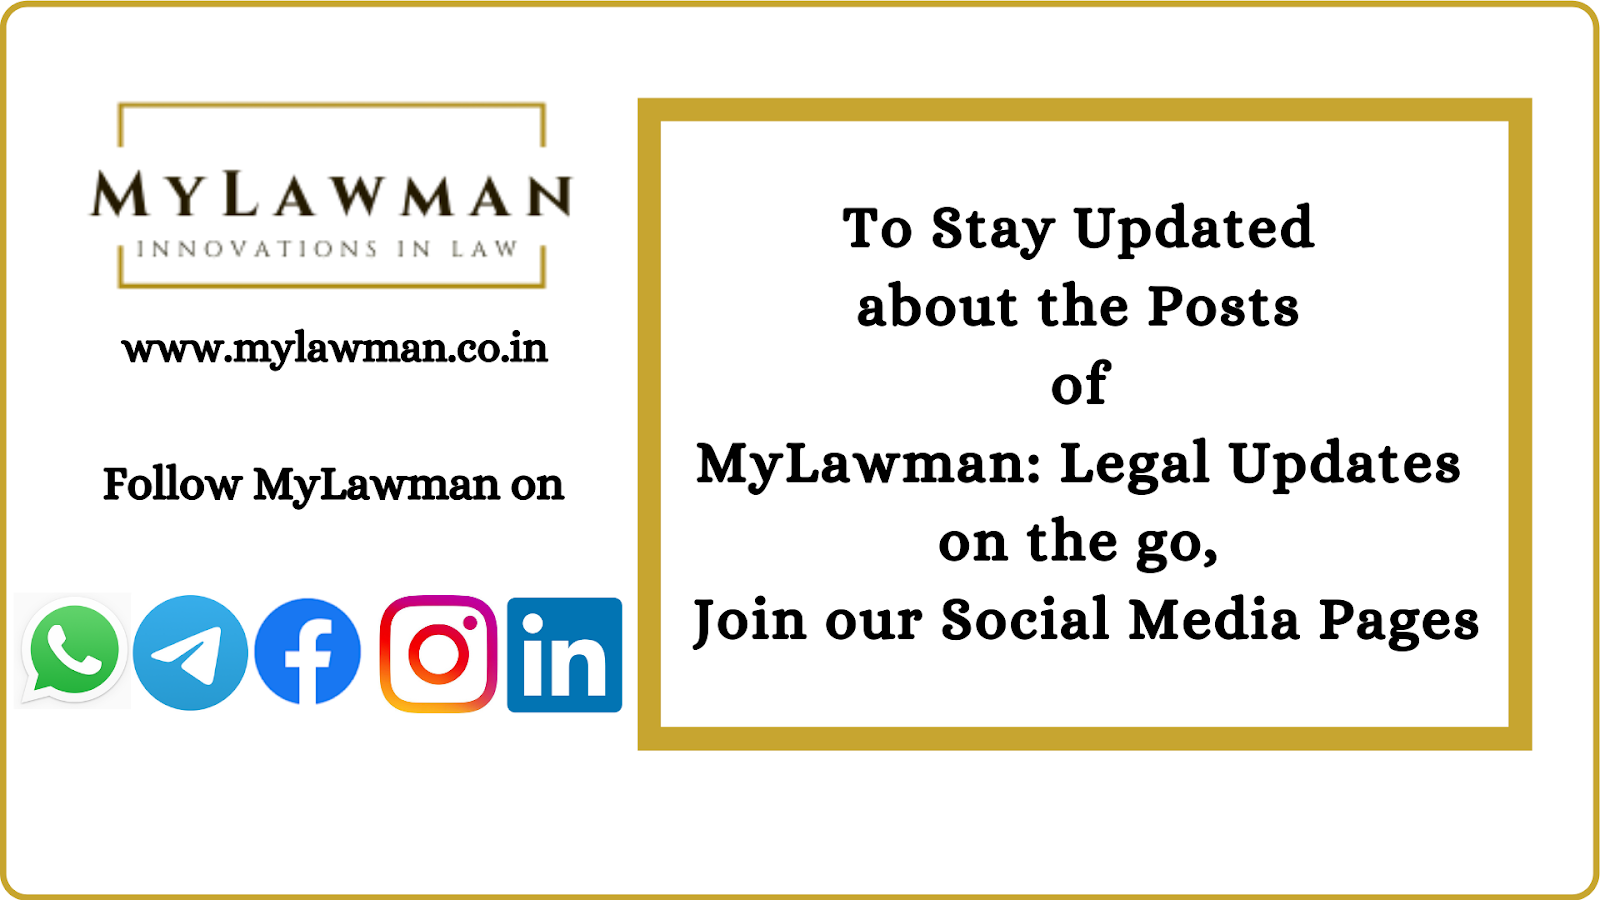 To Stay Updated about the Posts of MyLawman: Legal Updates on the go, Join our Social Media Pages